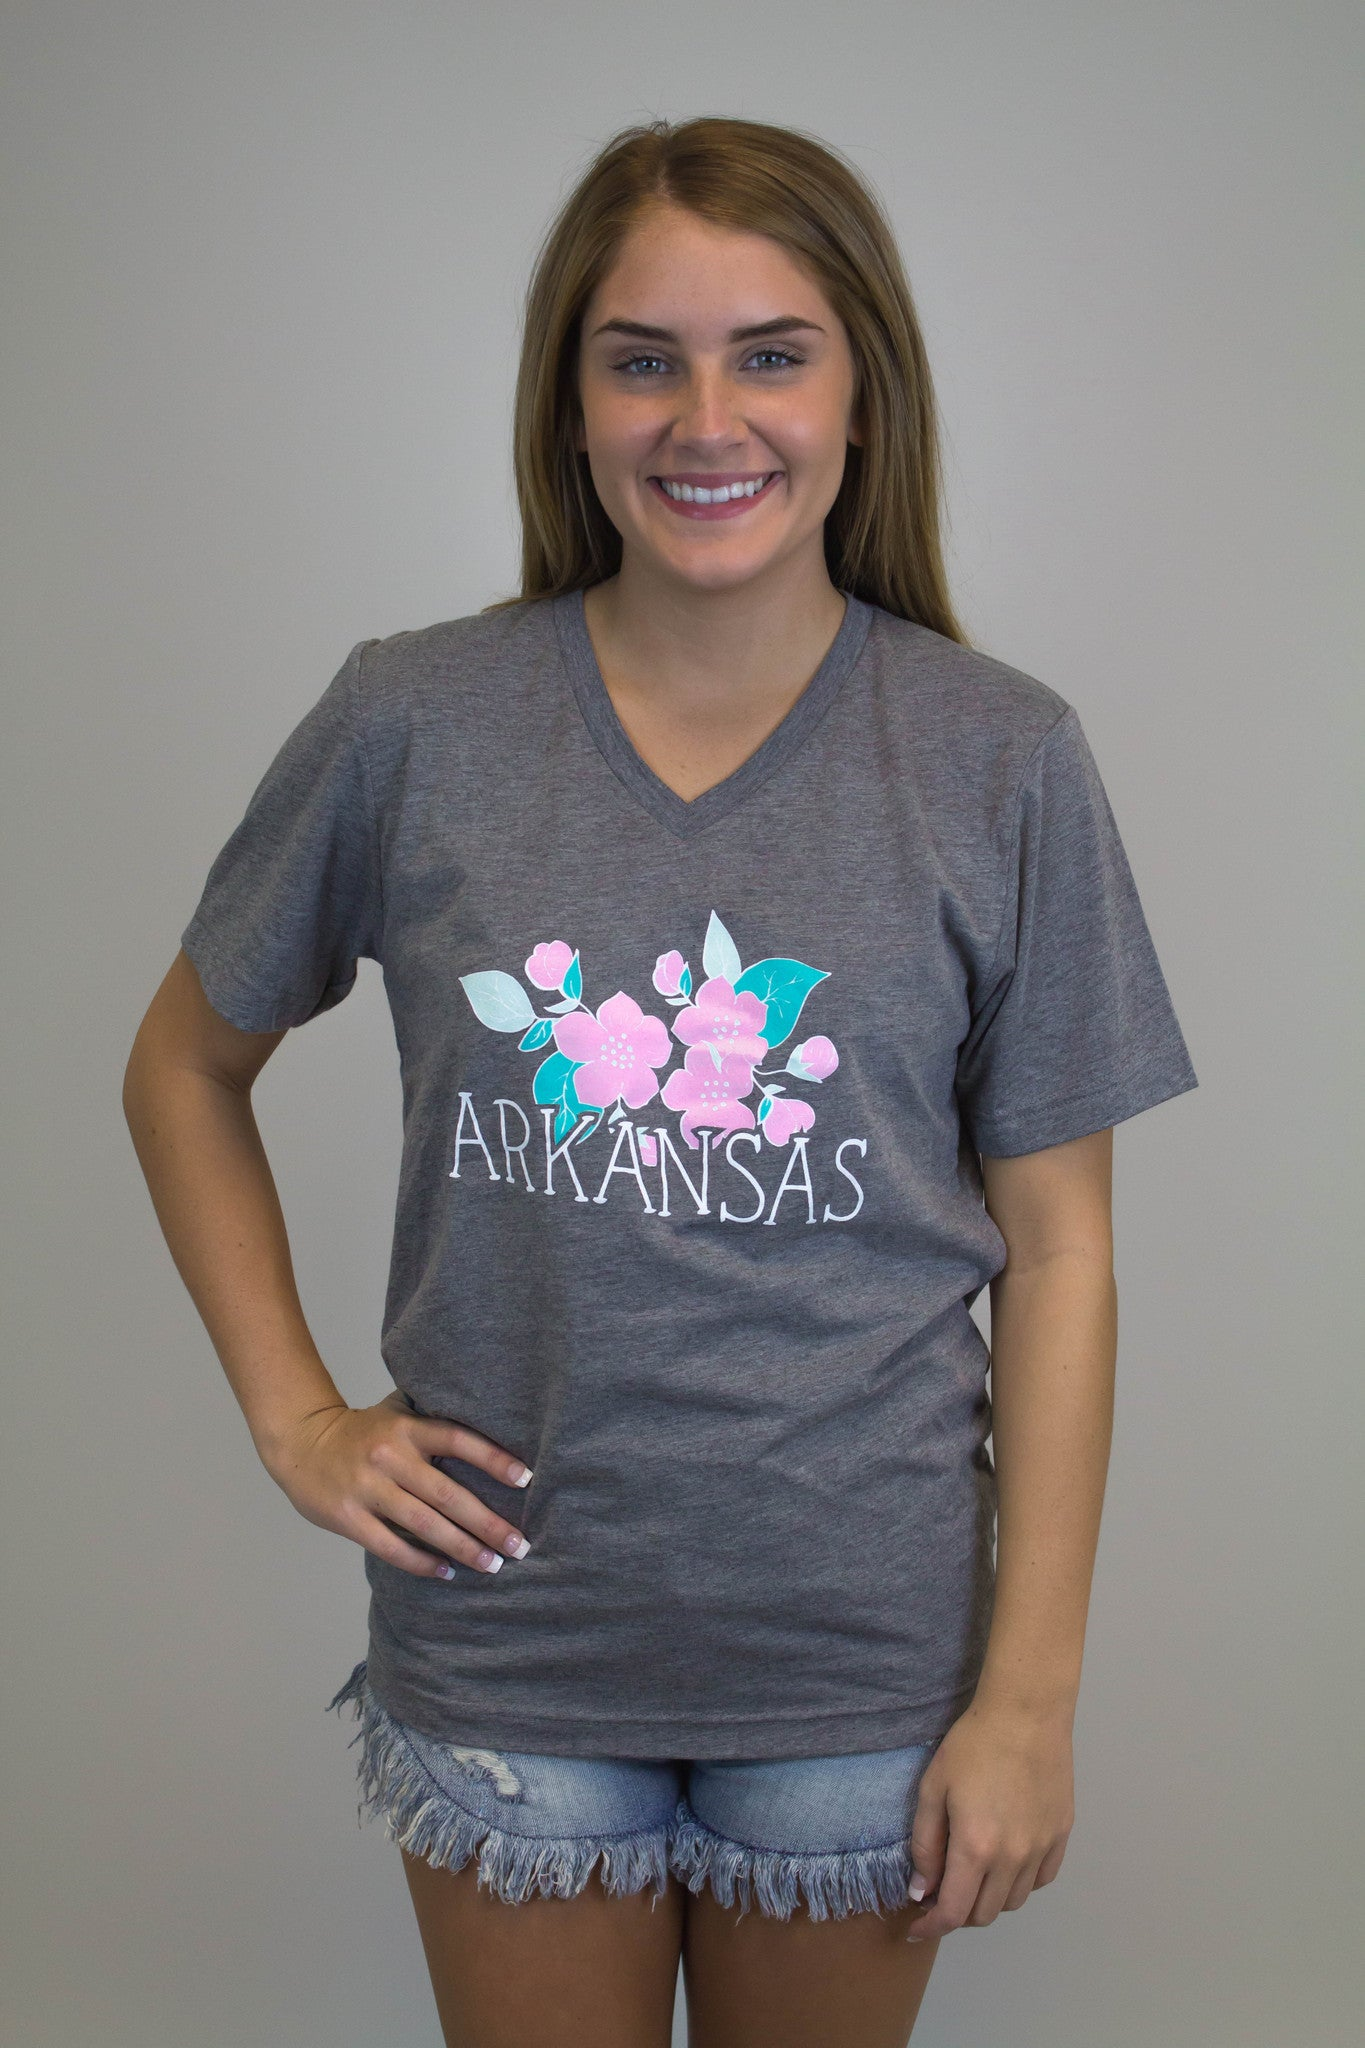 Arkansas Storyboard T-Shirt